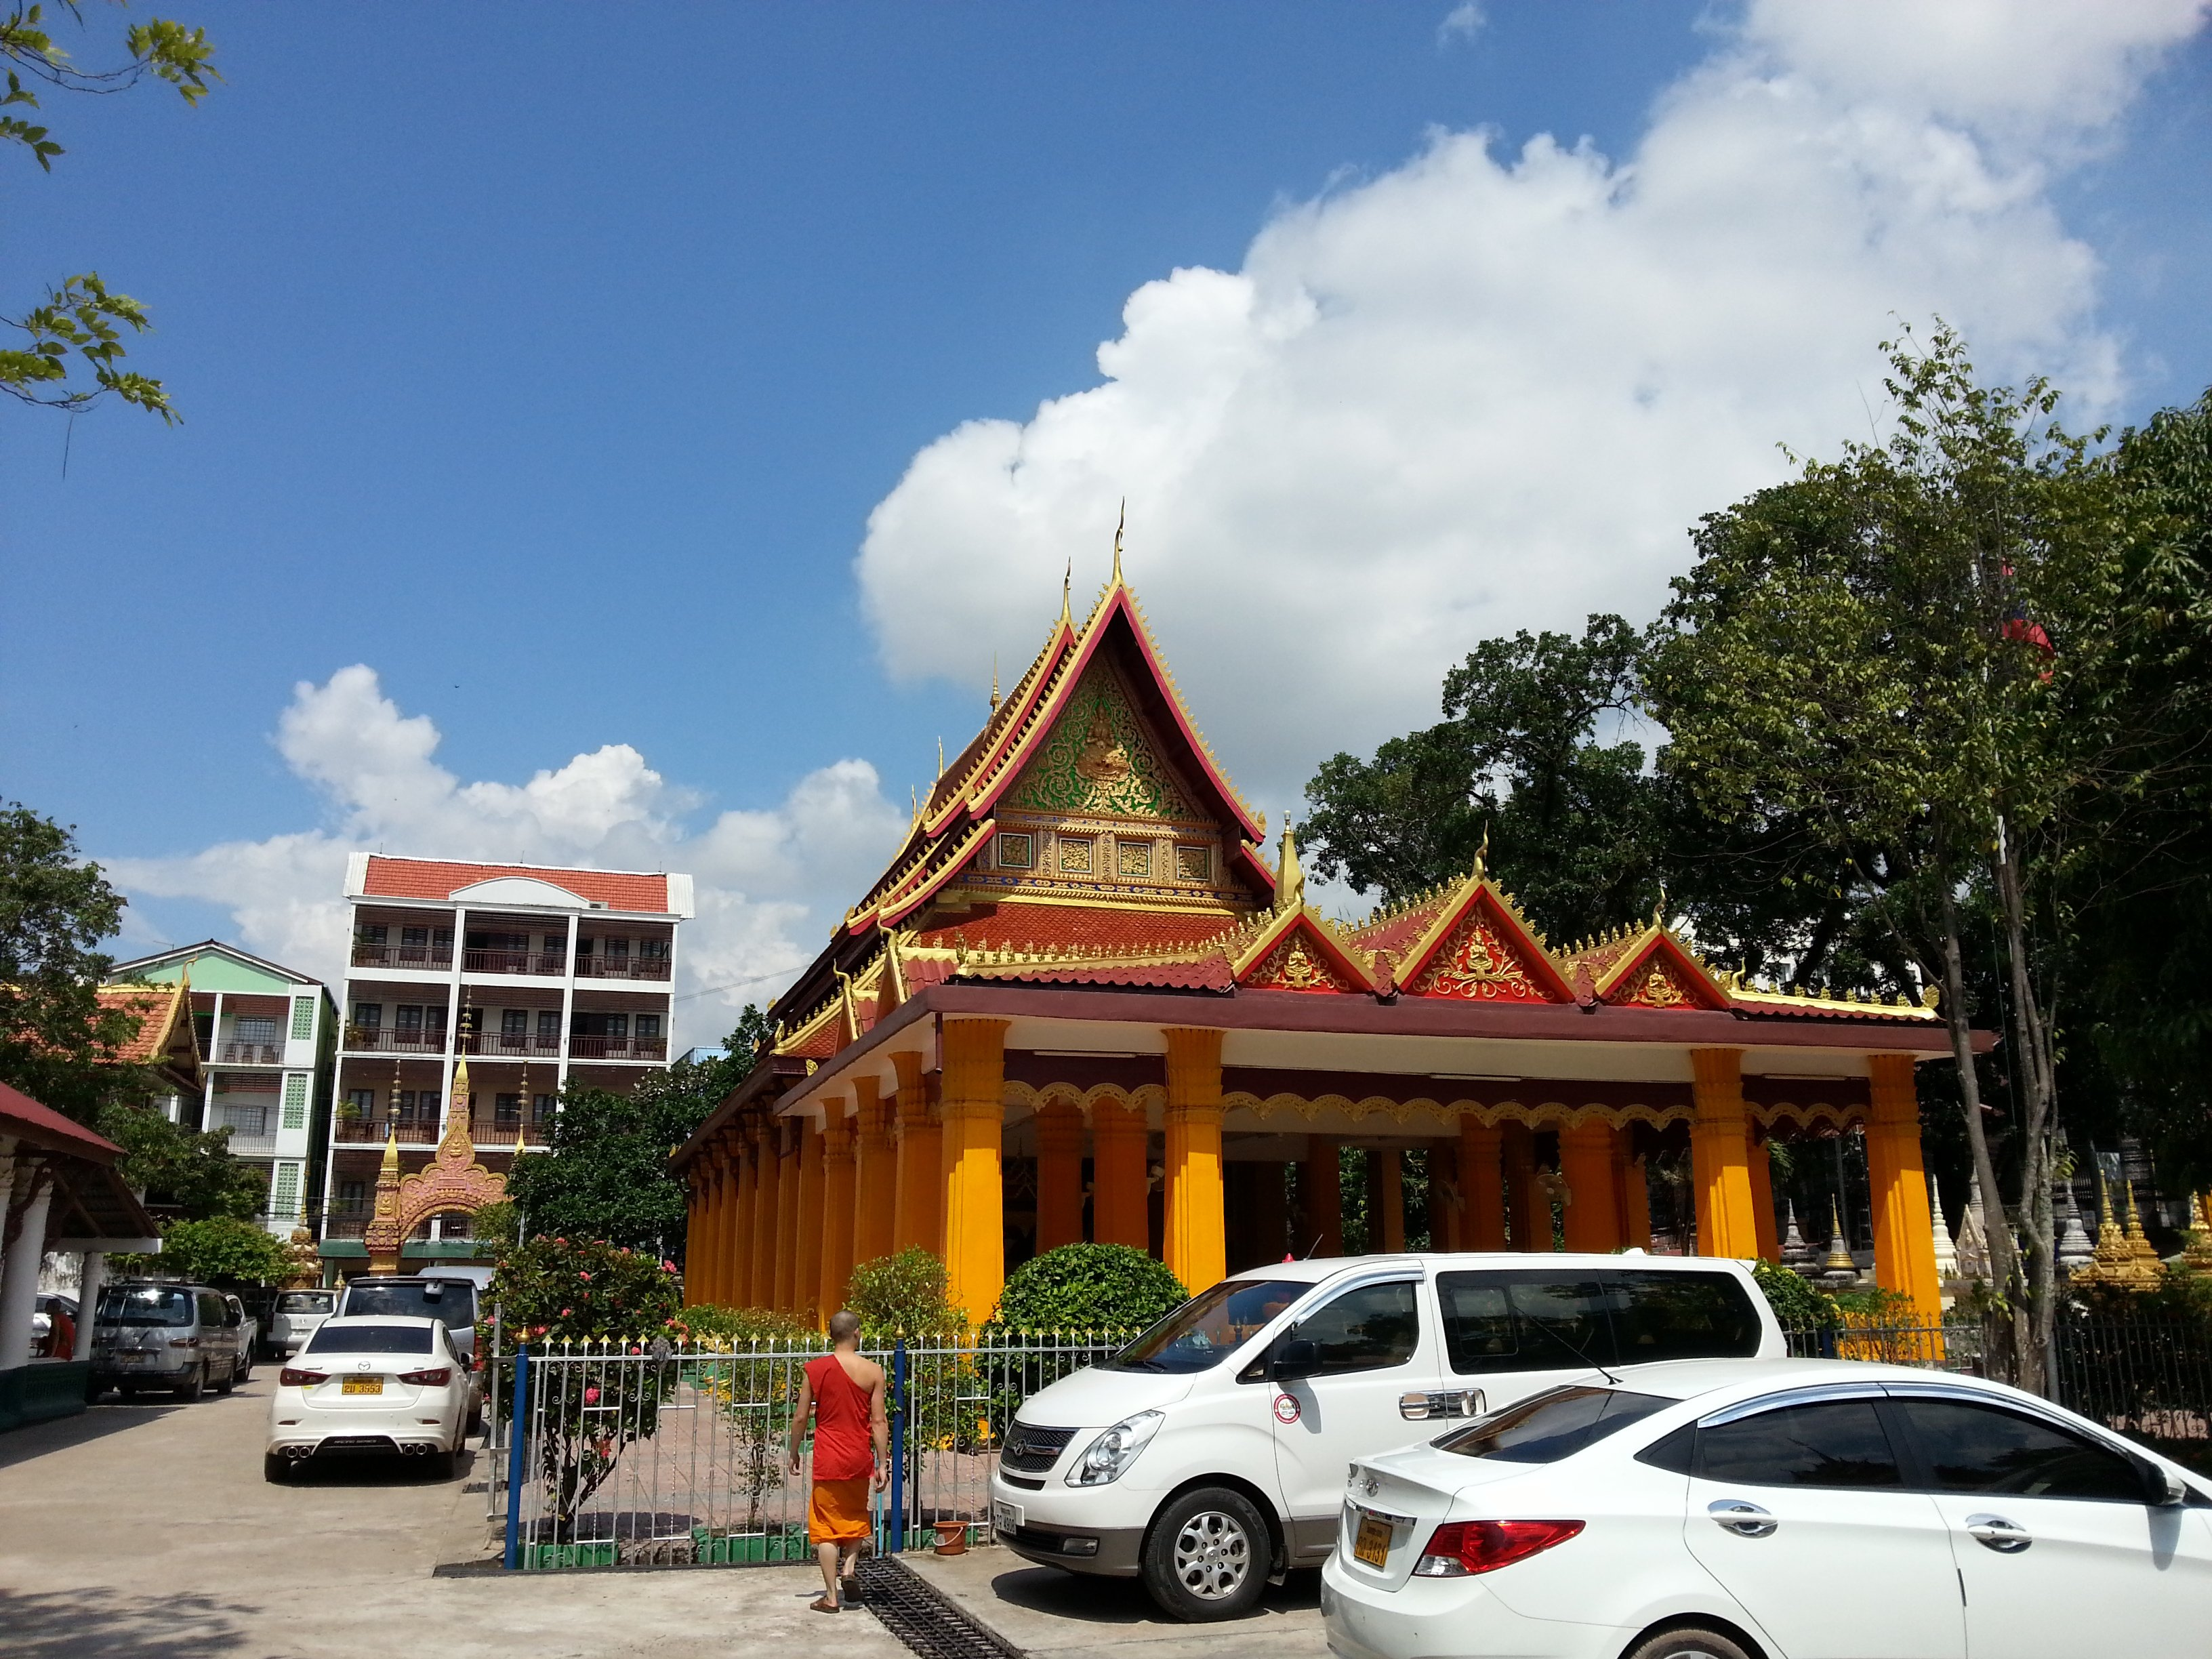 Main temple building at Wat Mixai